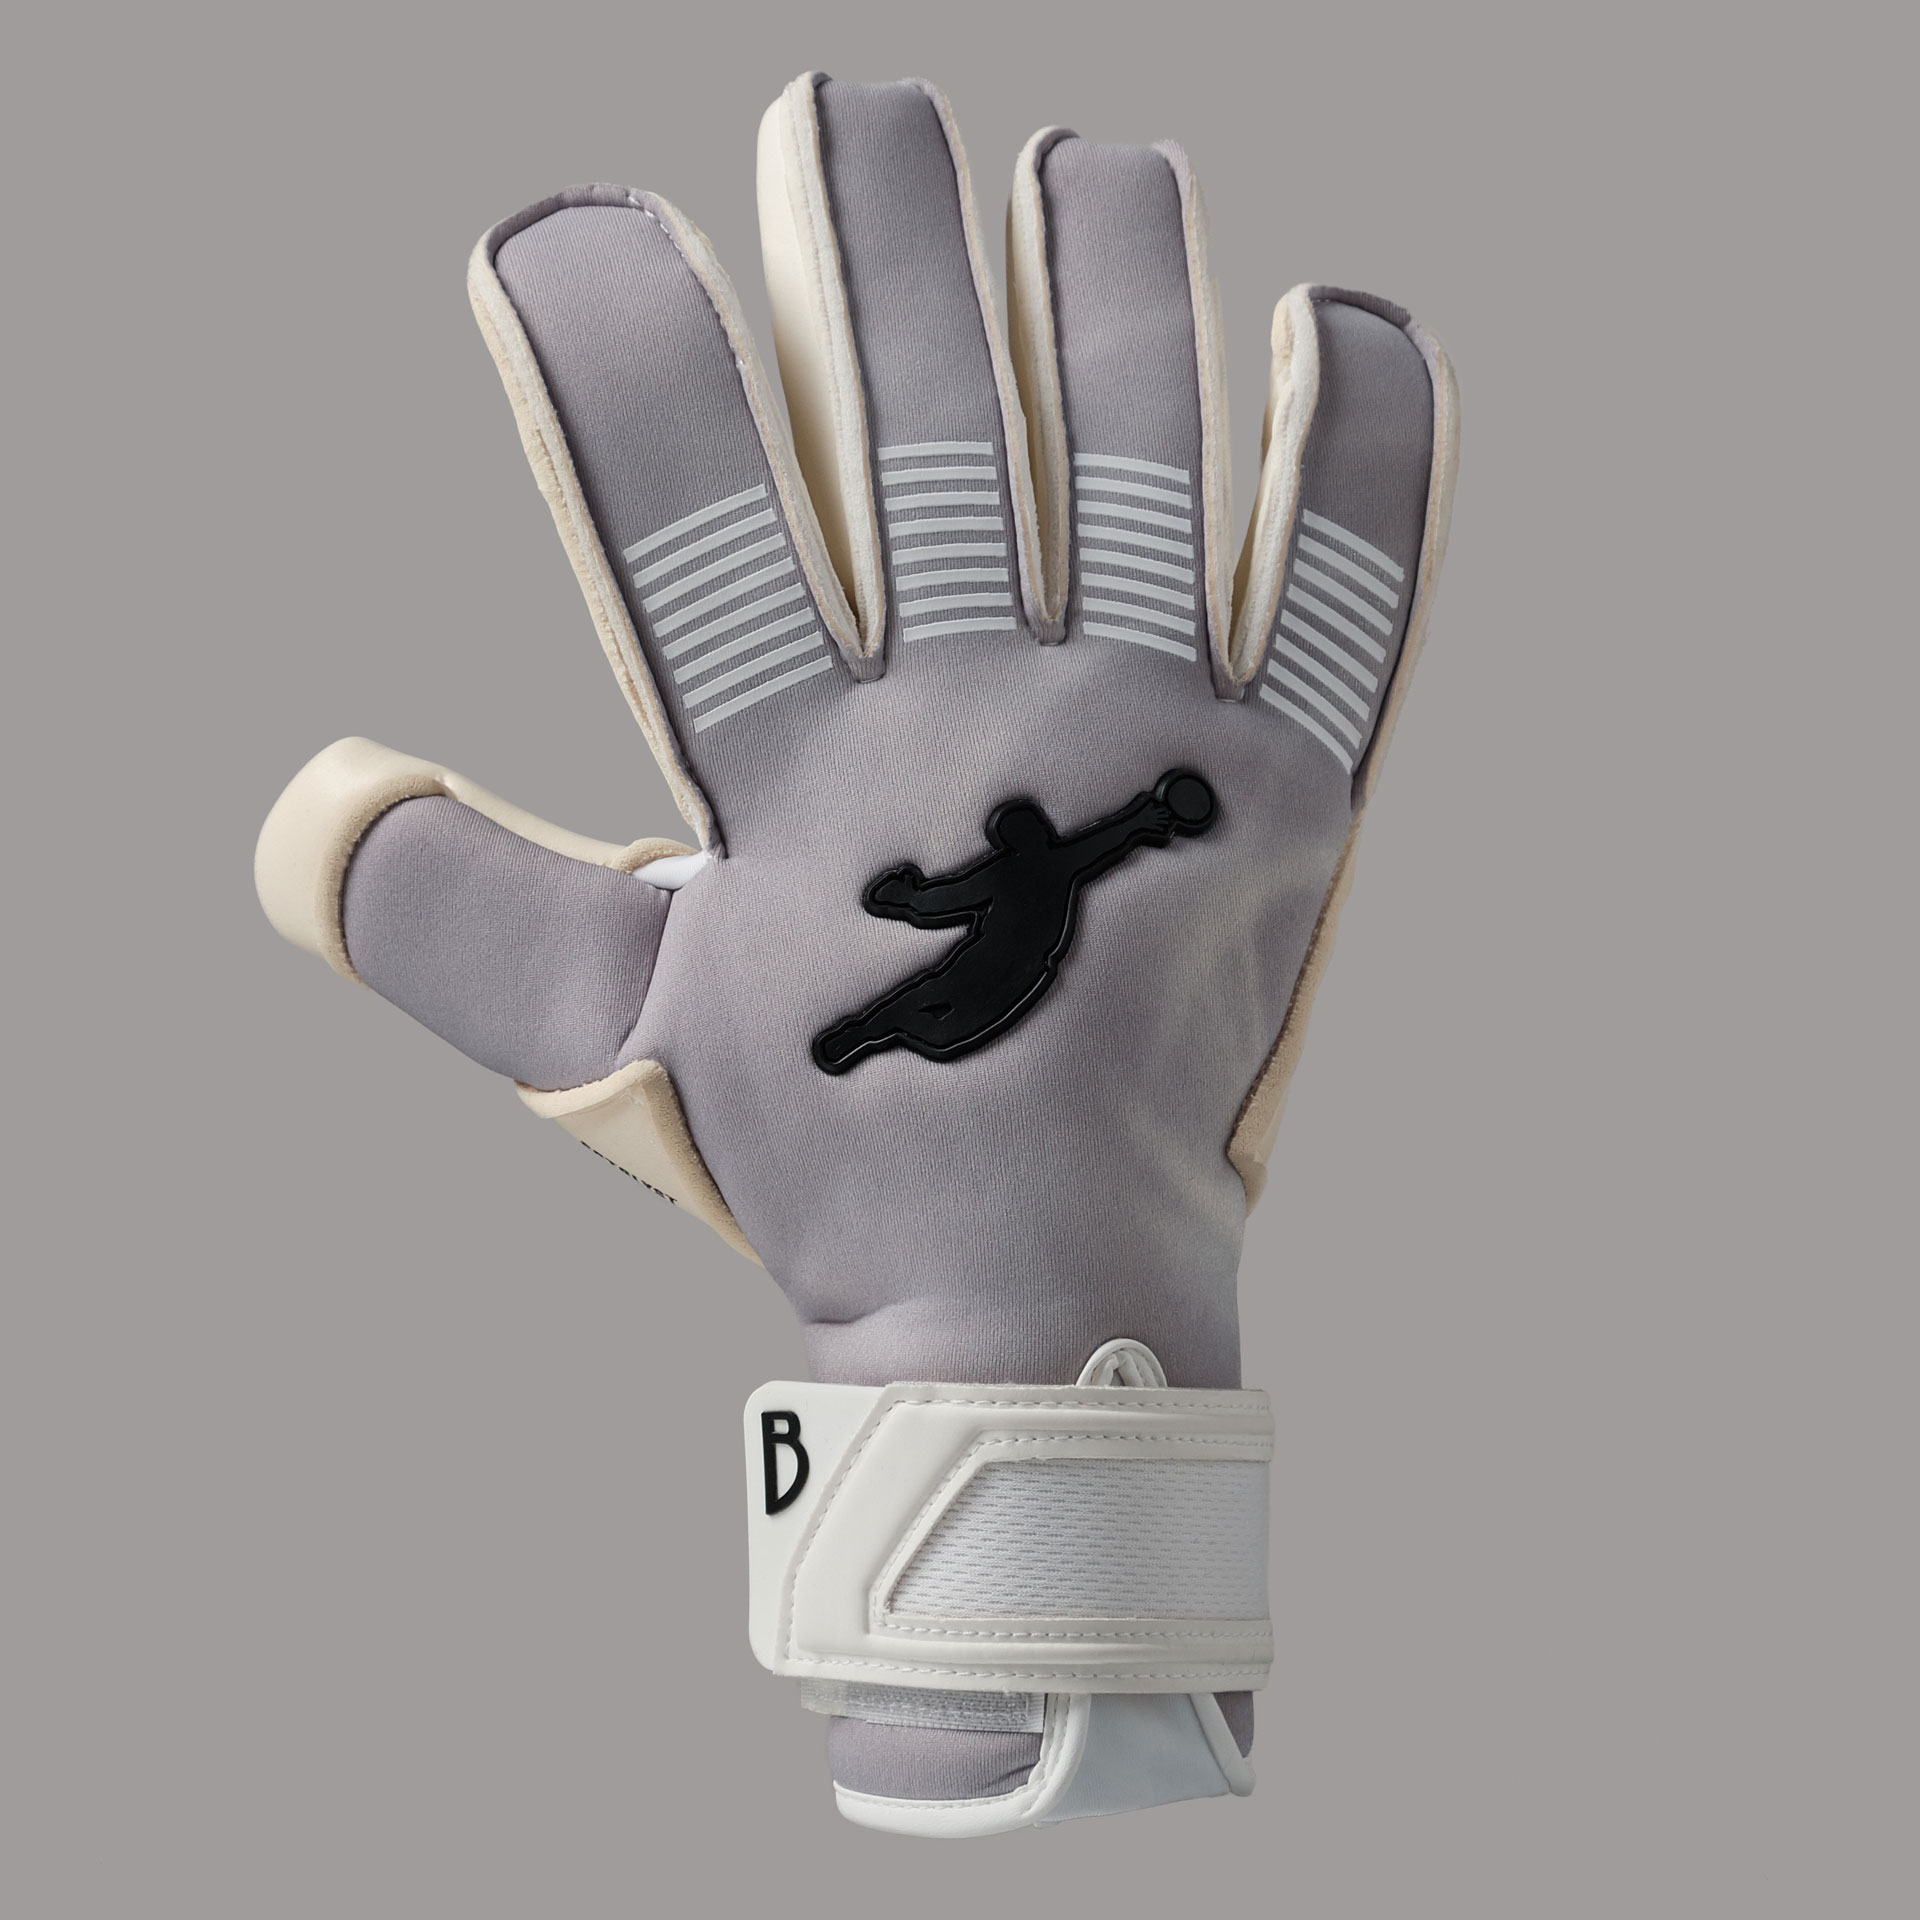 Brave GK Catalyst Grey-3-Brave GK